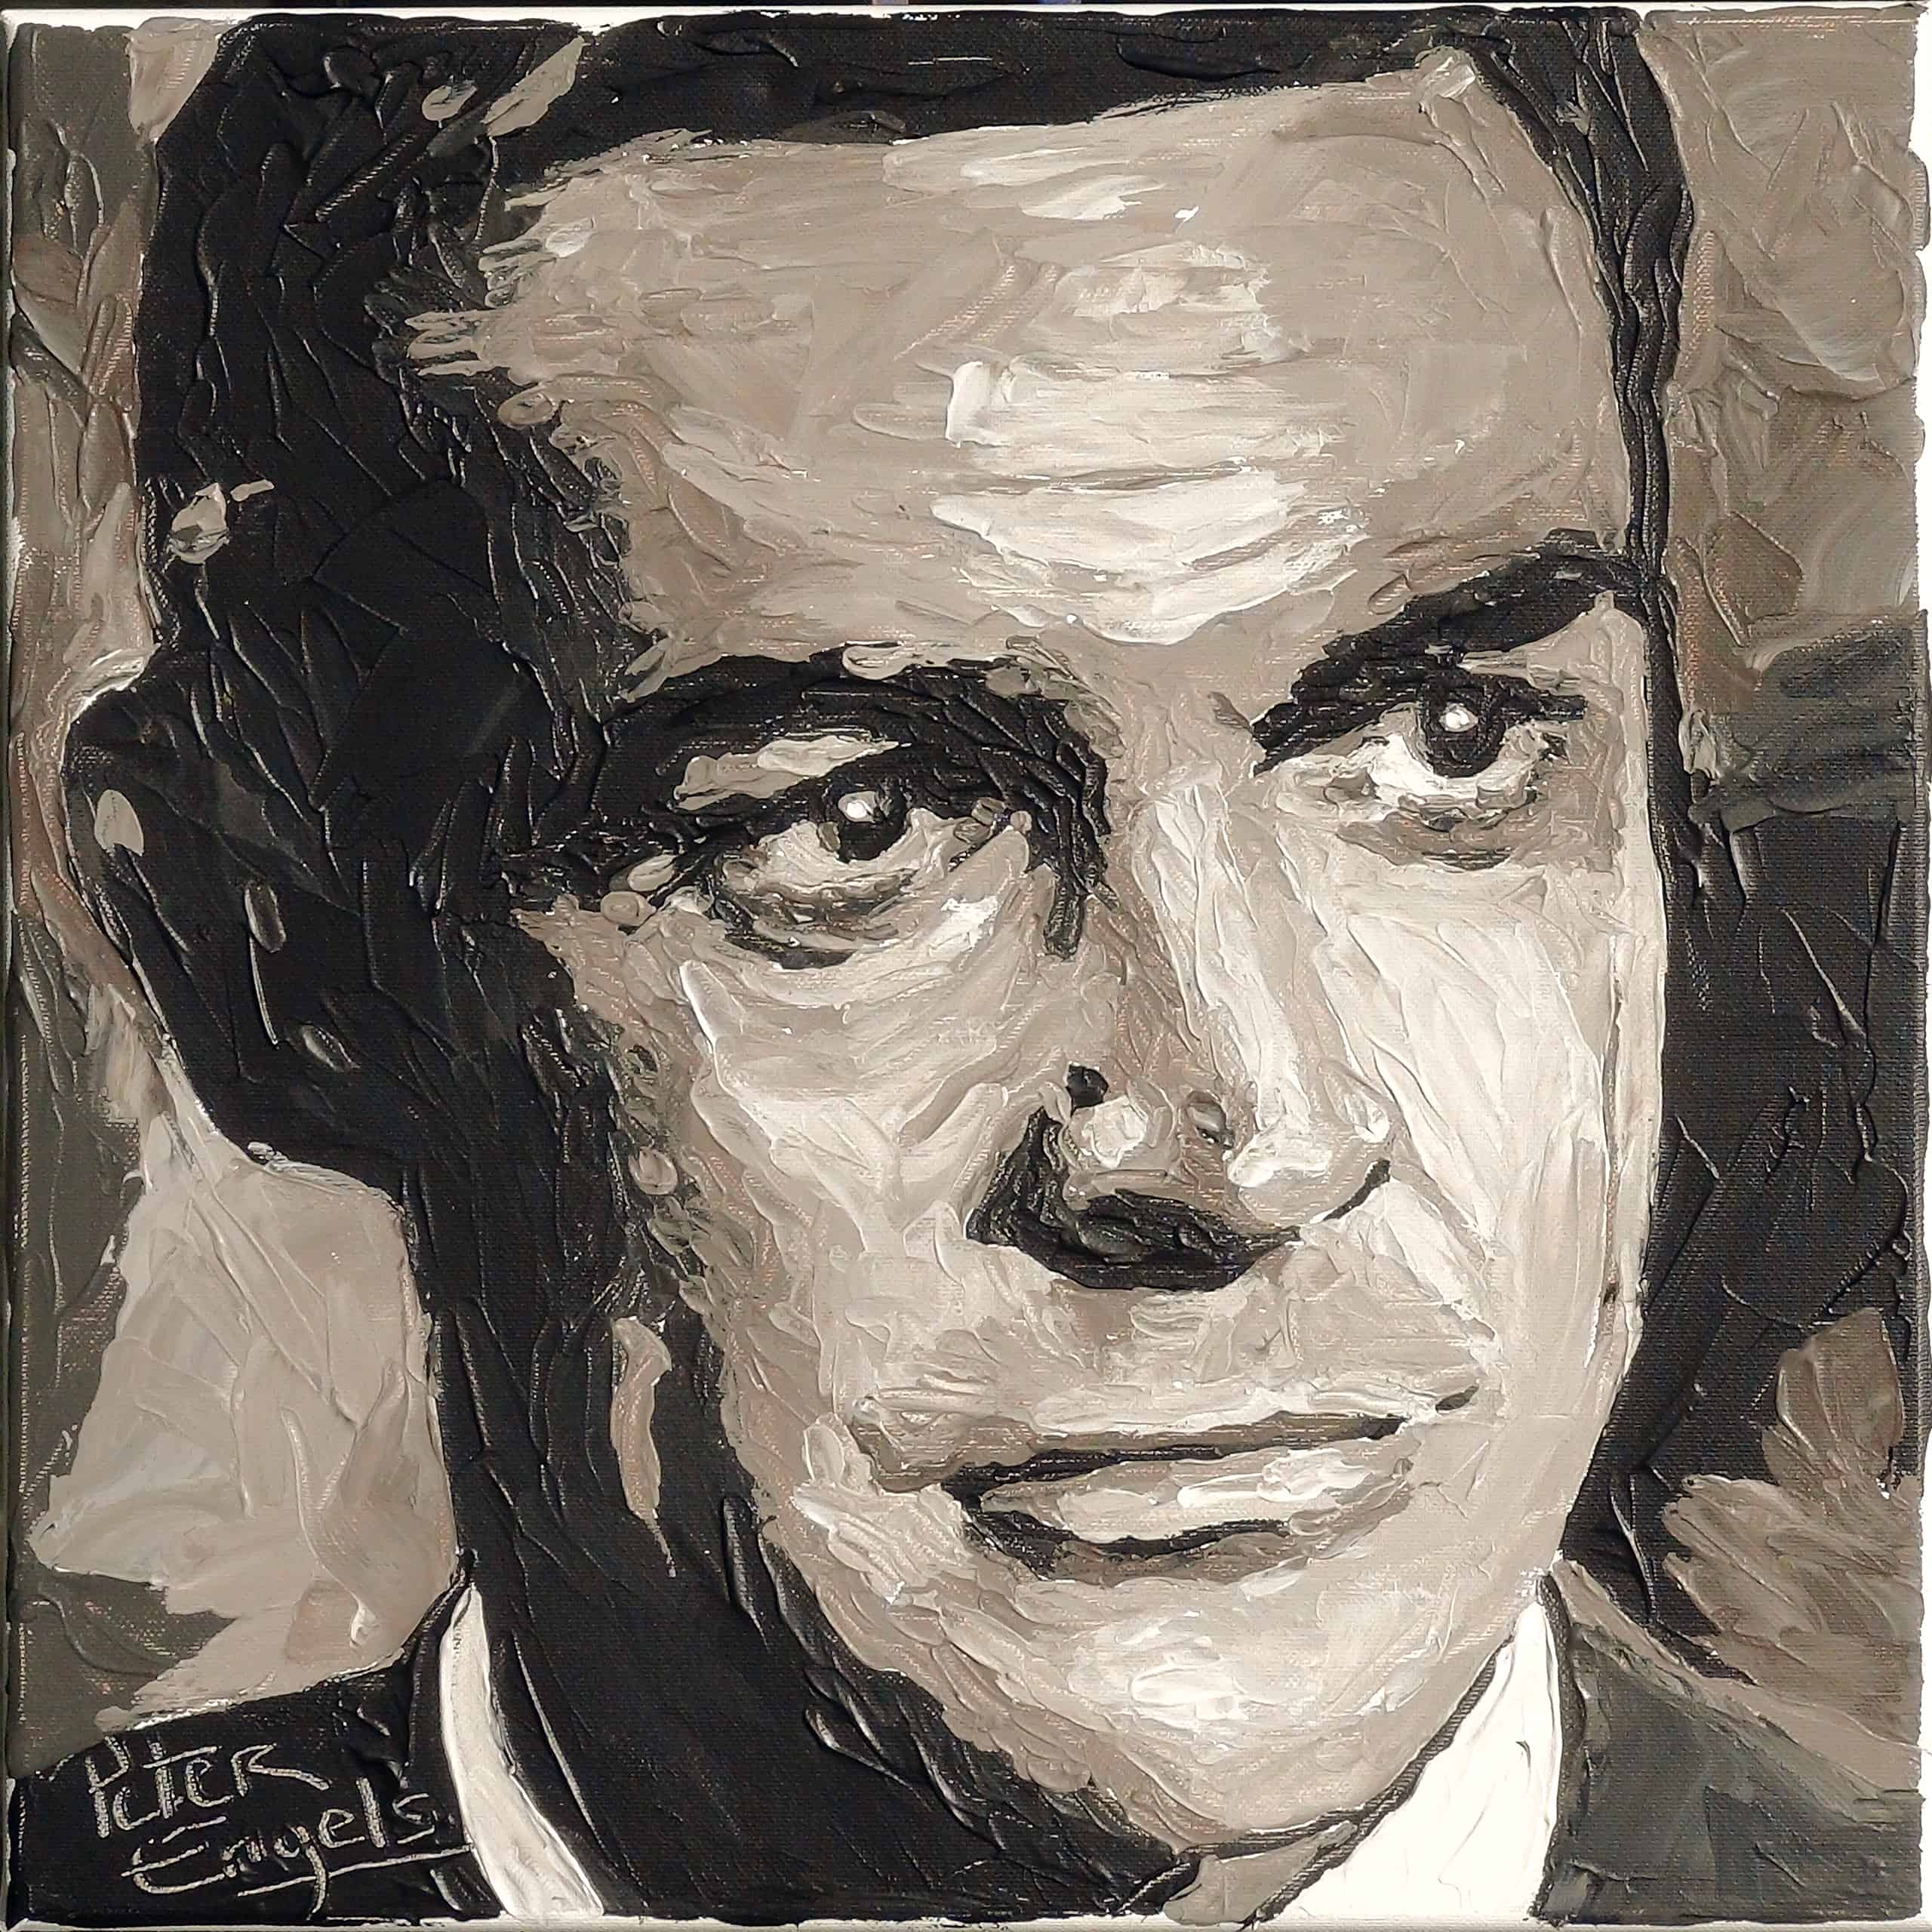 James Bond Actors Sold Portrait Painting By Artist Peter Engels